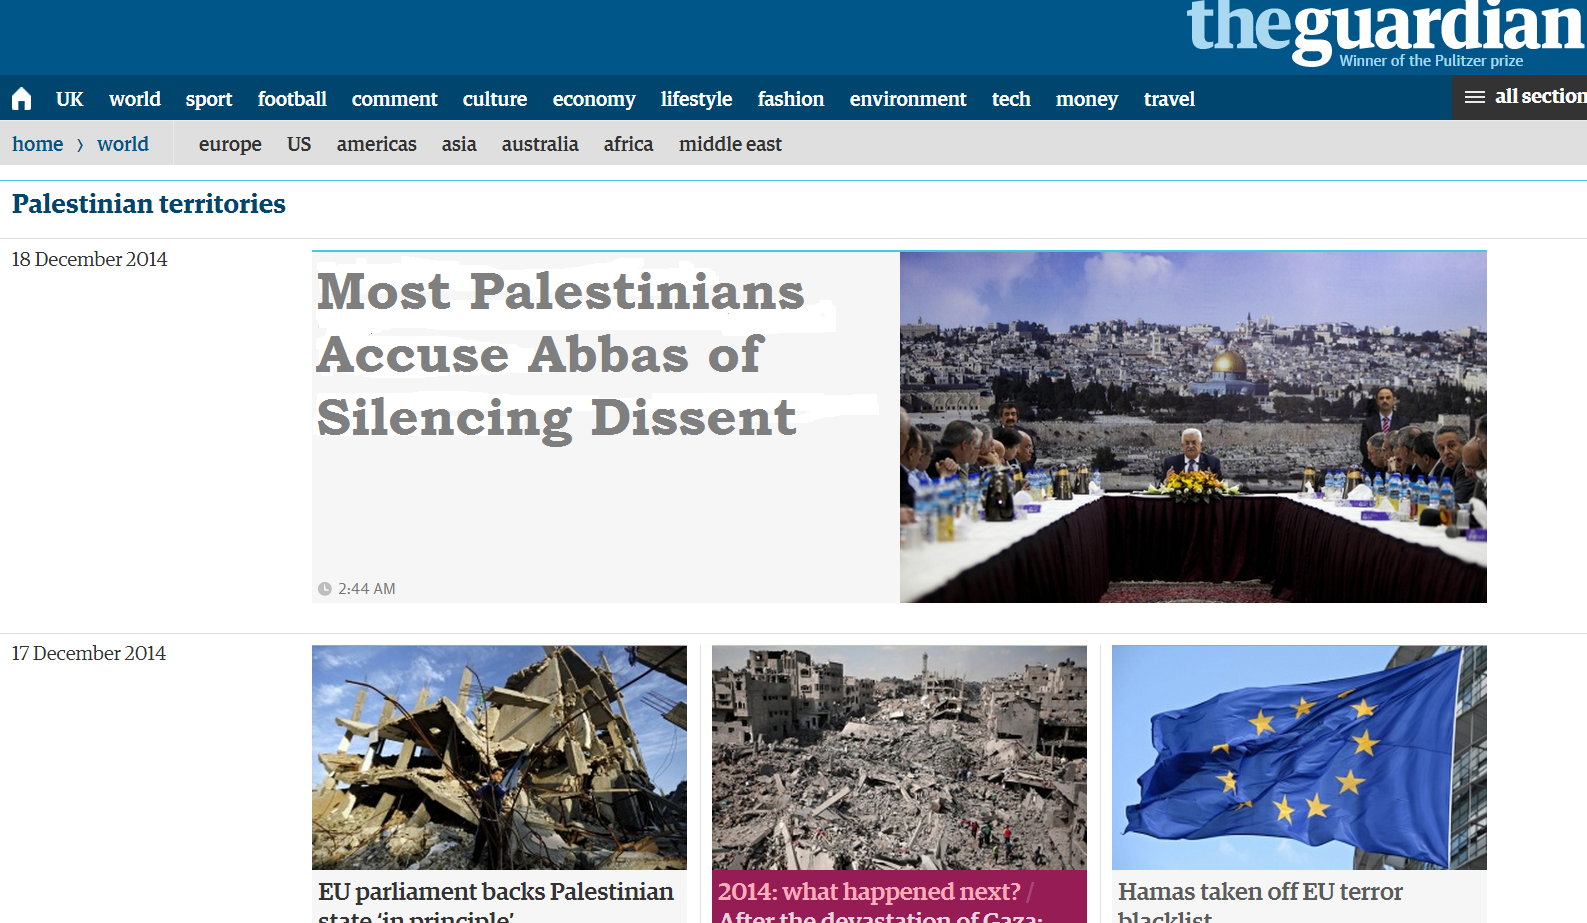 This AP story about Abbas's stifling of dissent won't appear in the Guardian